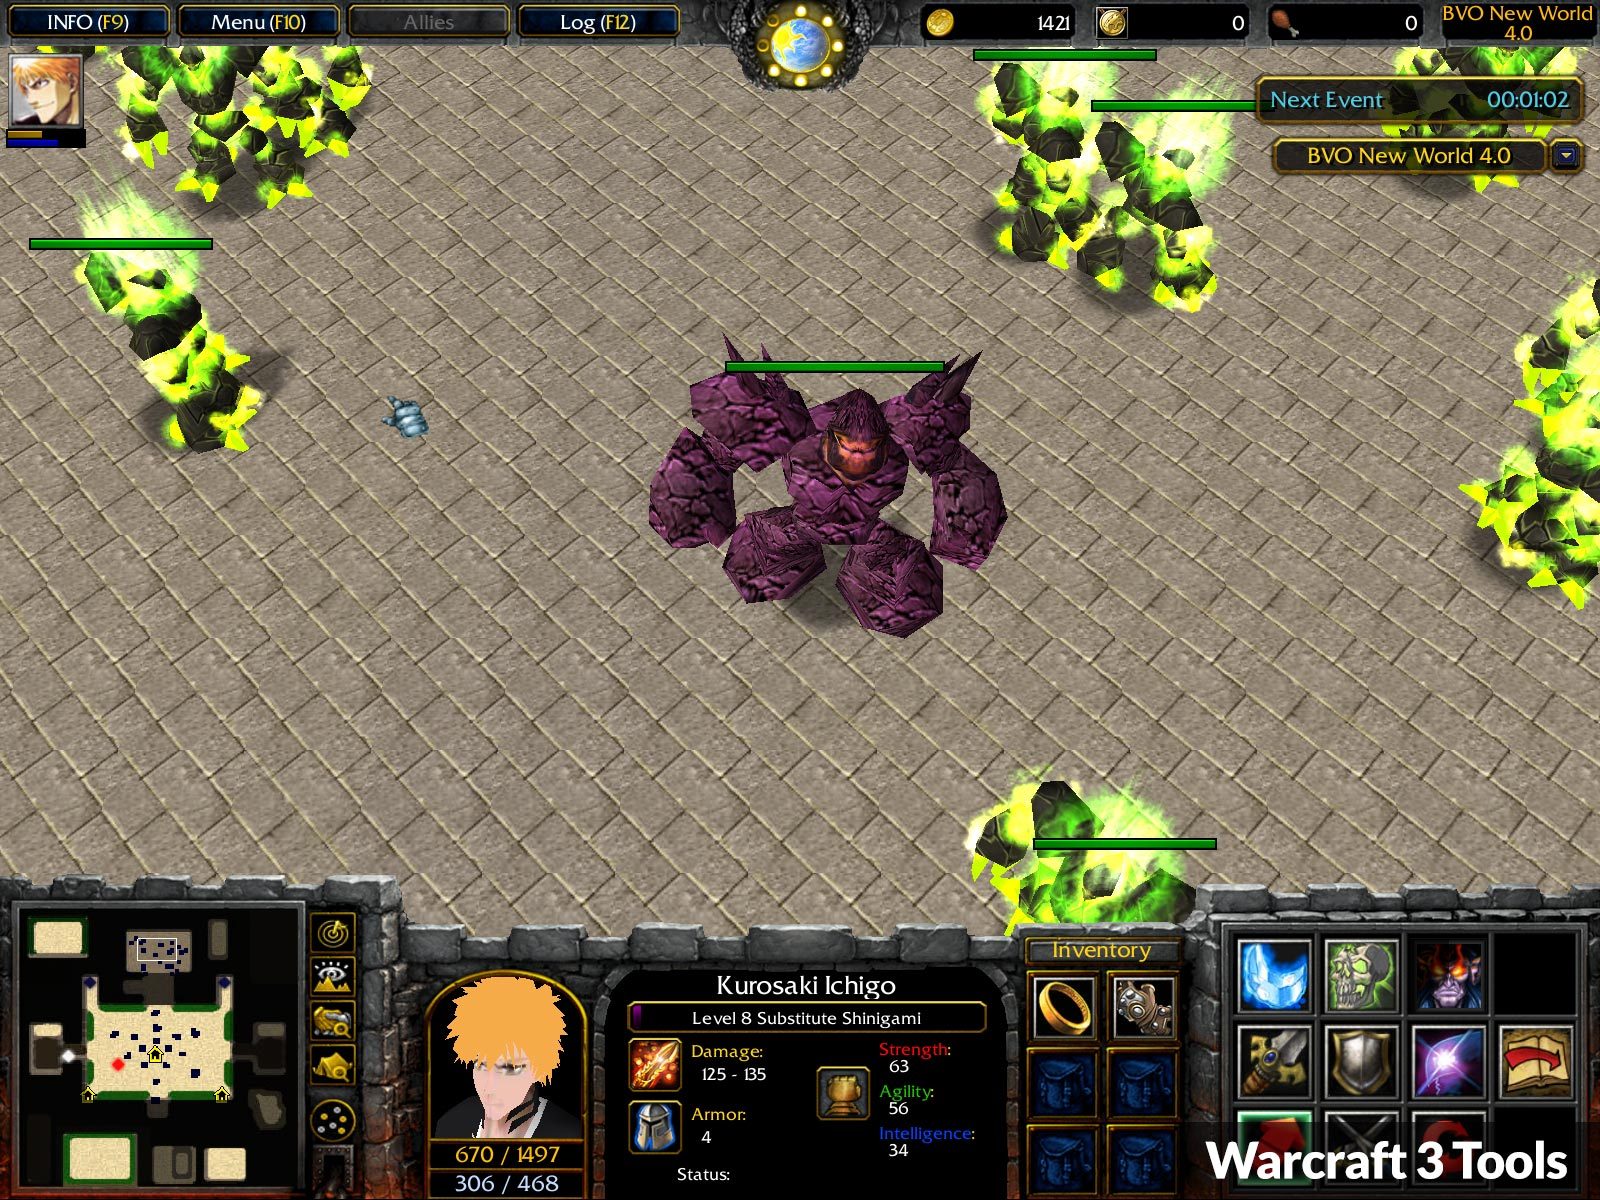 Warcraft 3 BVO New World Map Screenshot